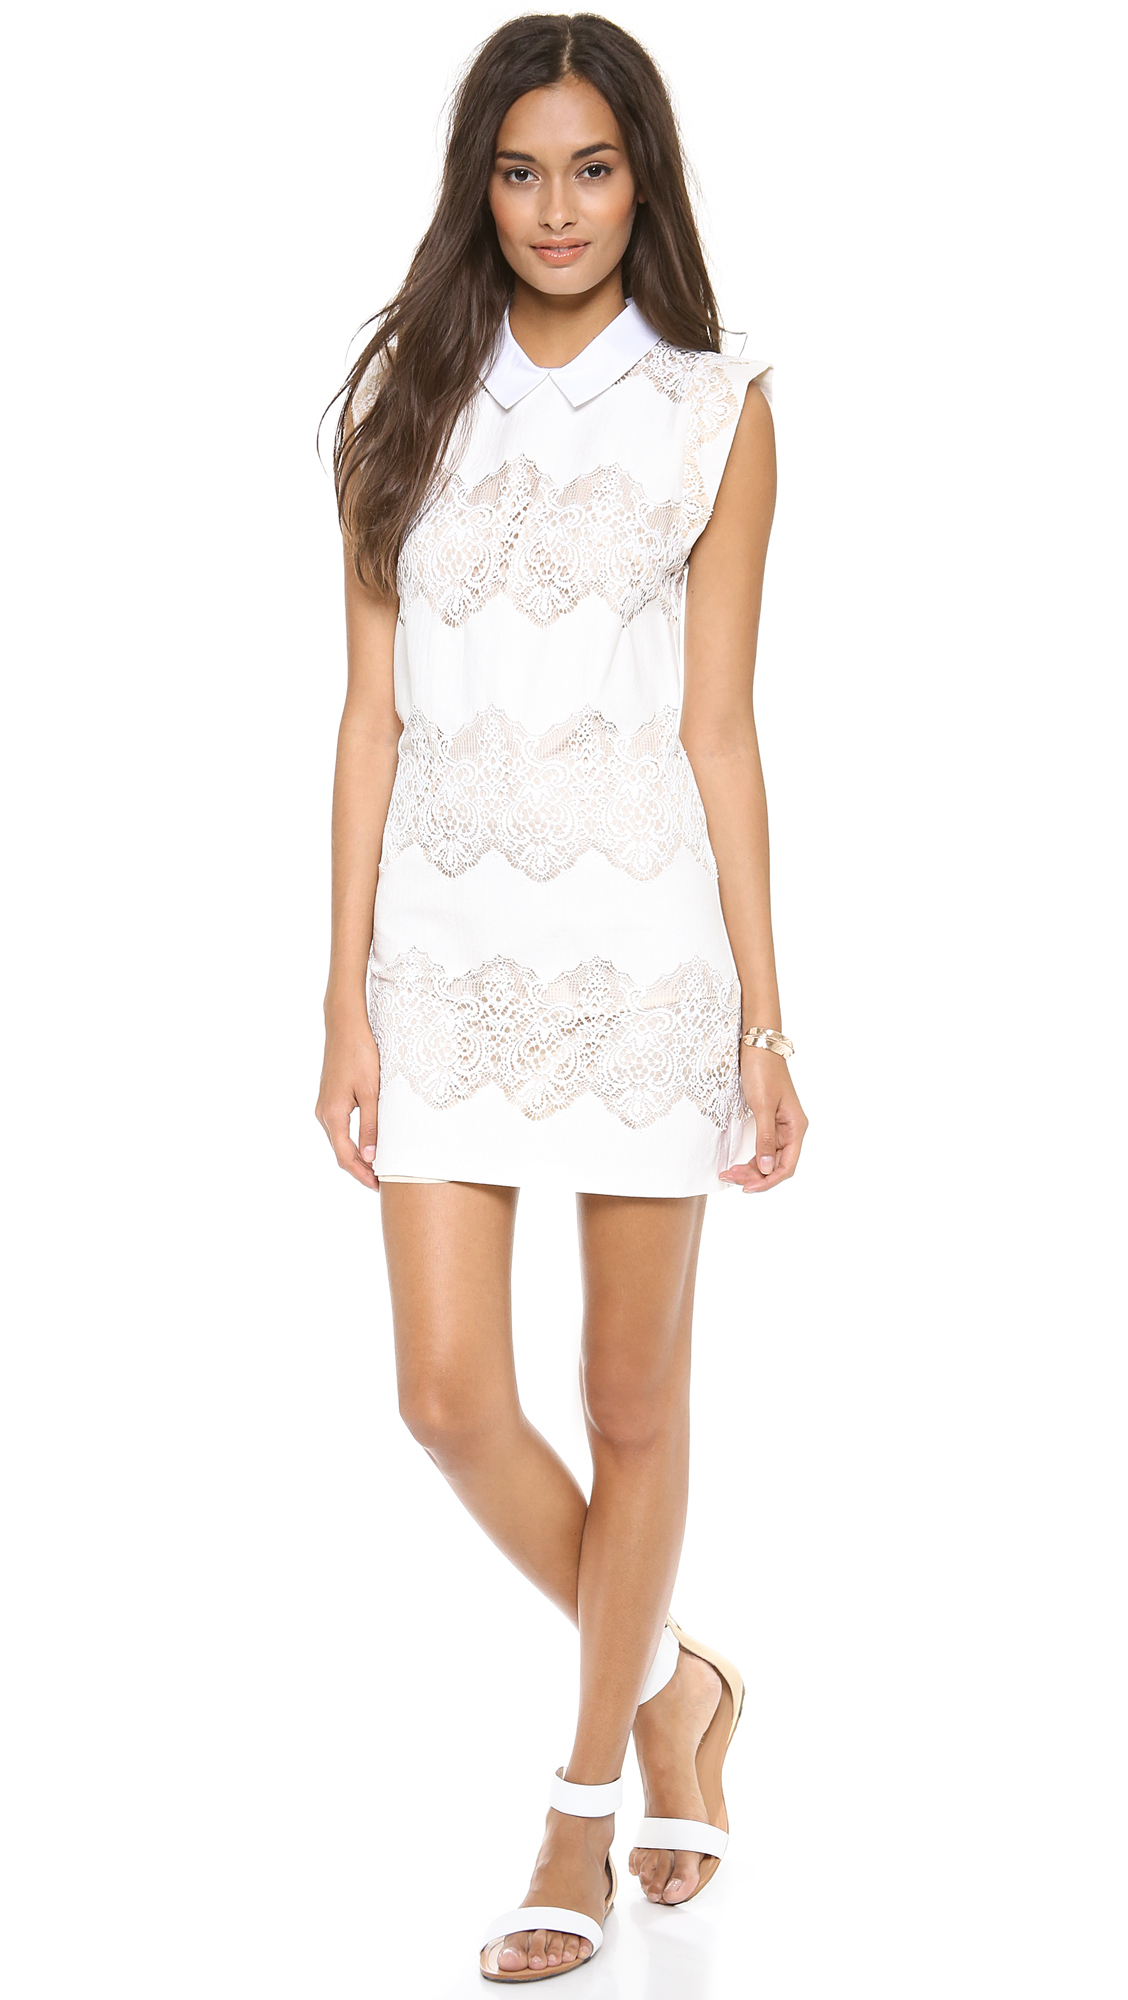 Lover White Lace Dress